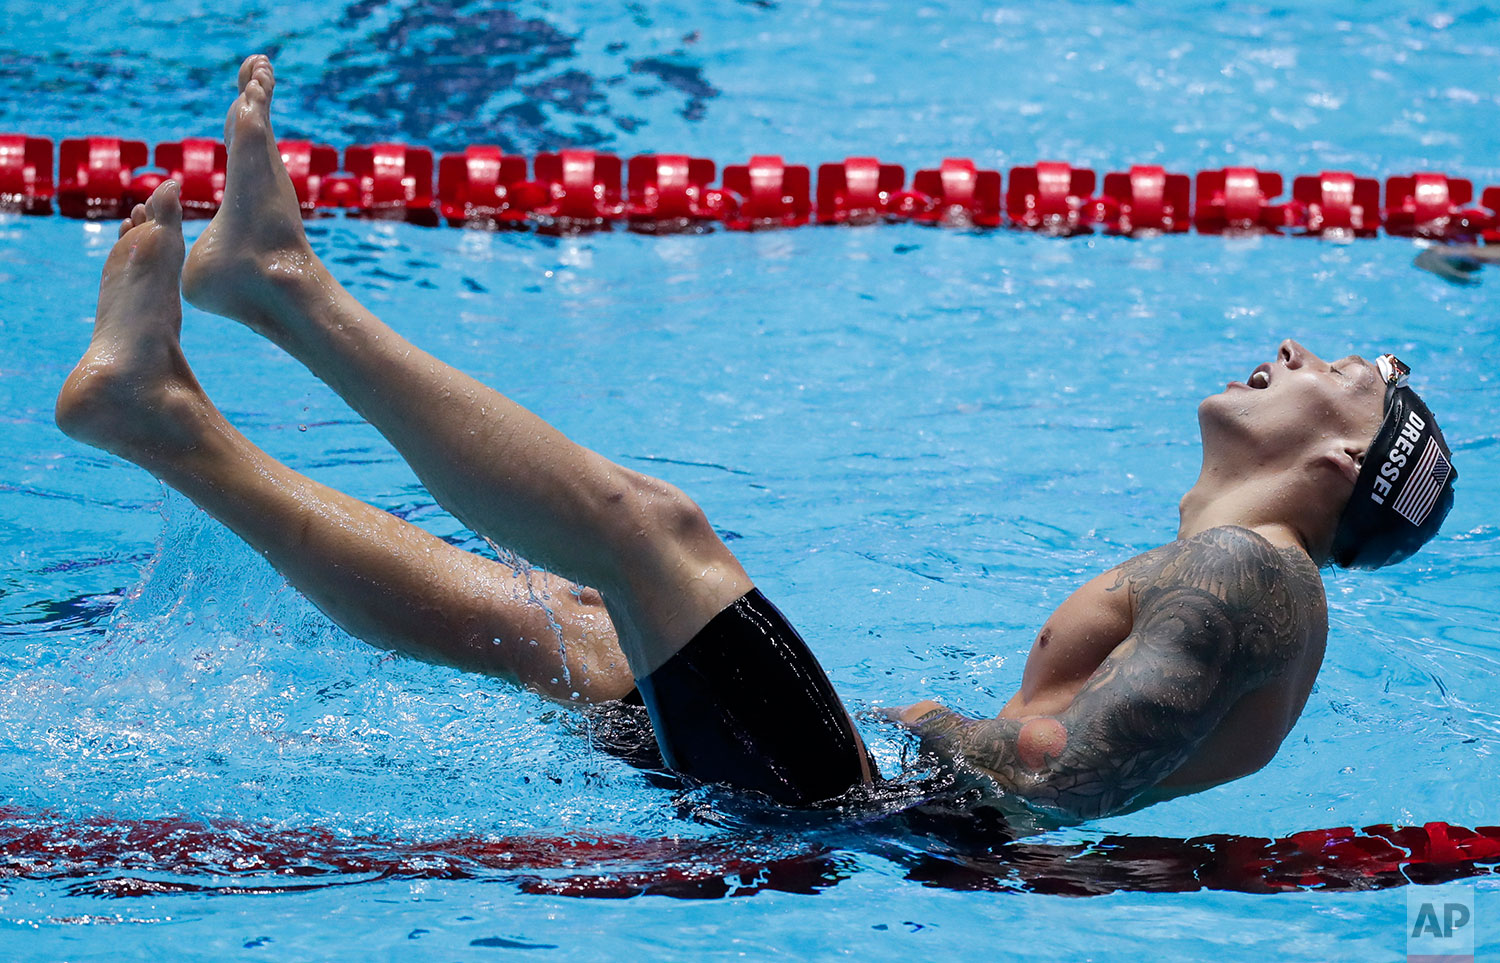 United States' Caeleb Dressel celebrates after winning the men's 100m freestyle final at the World Swimming Championships in Gwangju, South Korea, Thursday, July 25, 2019. (AP Photo/Lee Jin-man)